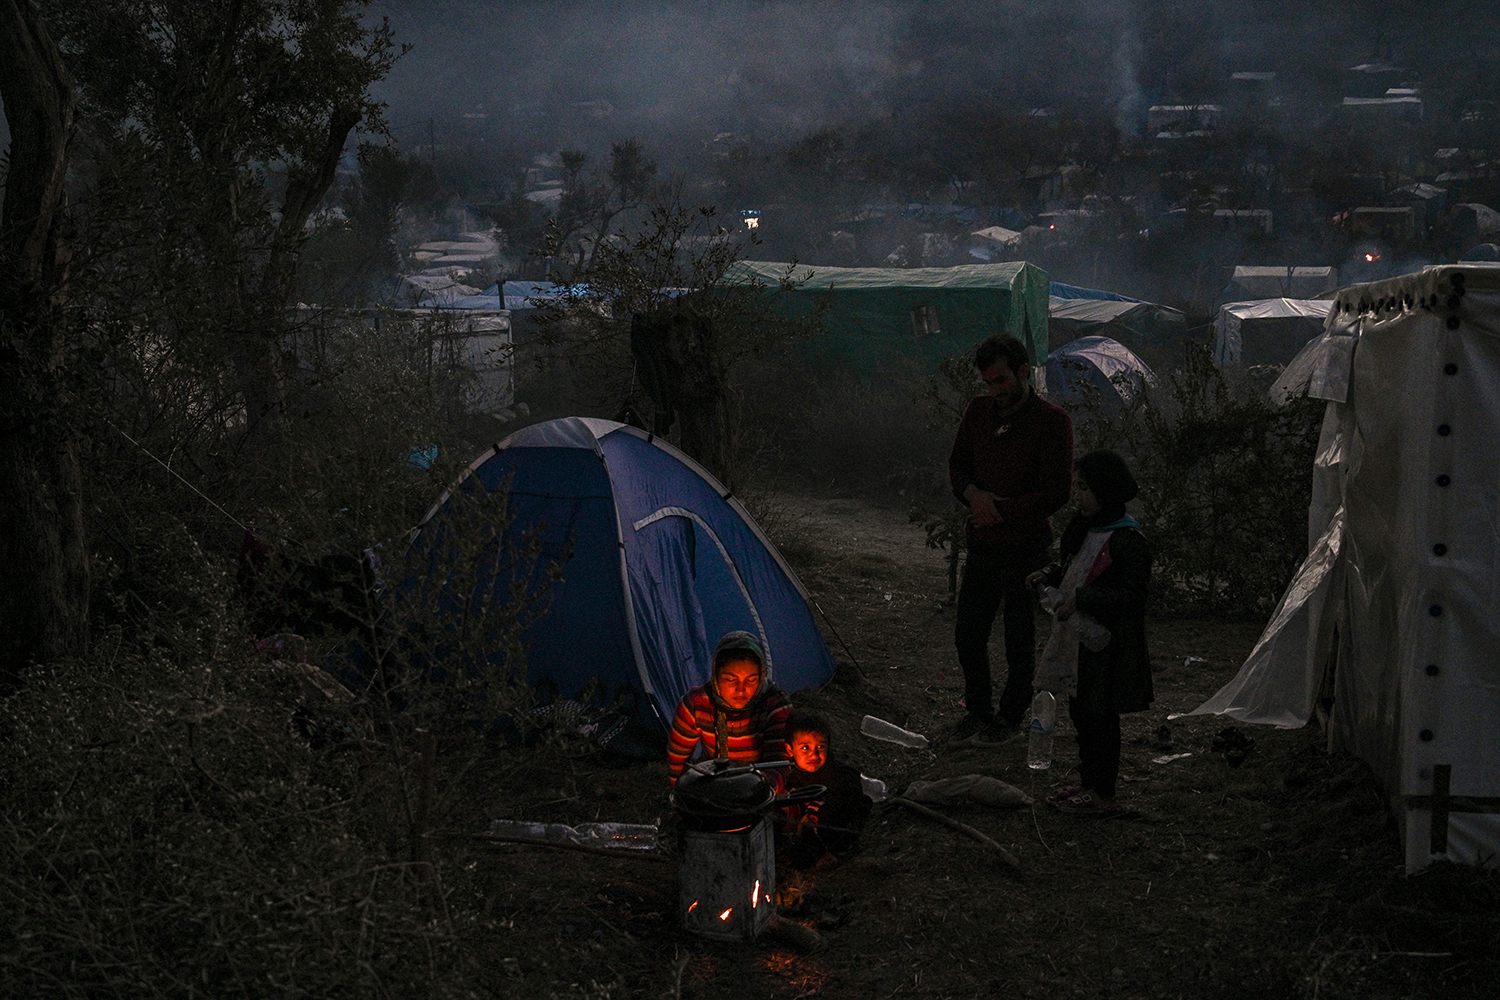 A family cooks dinner near the Moria refugee camp on the Greek island of Lesbos on Jan. 22. ARIS MESSINIS/AFP via Getty Images